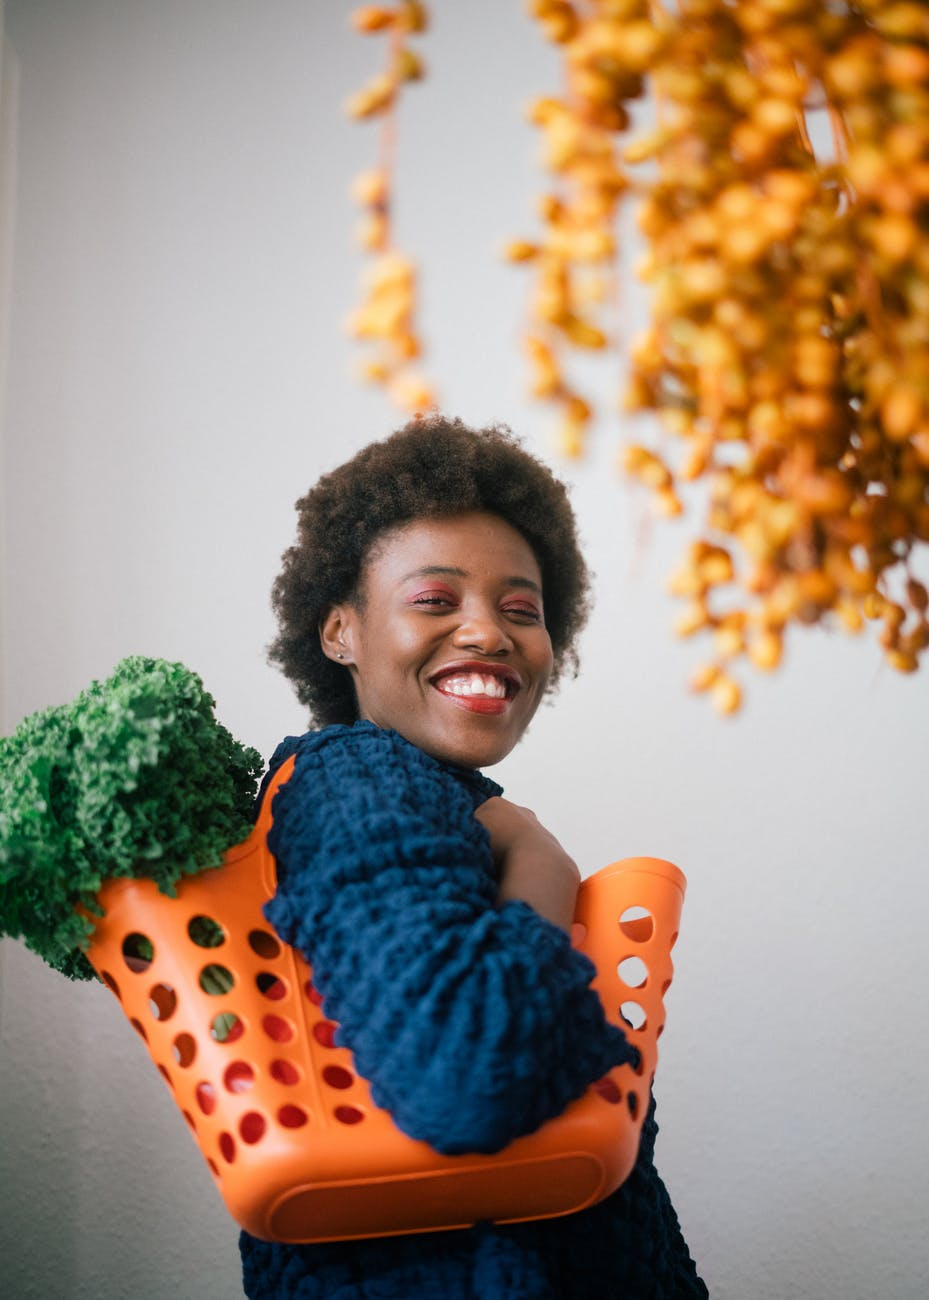 happy young black woman holding basket with lettuce on shoulder and cluster of yellow dates in grocery store on gray background